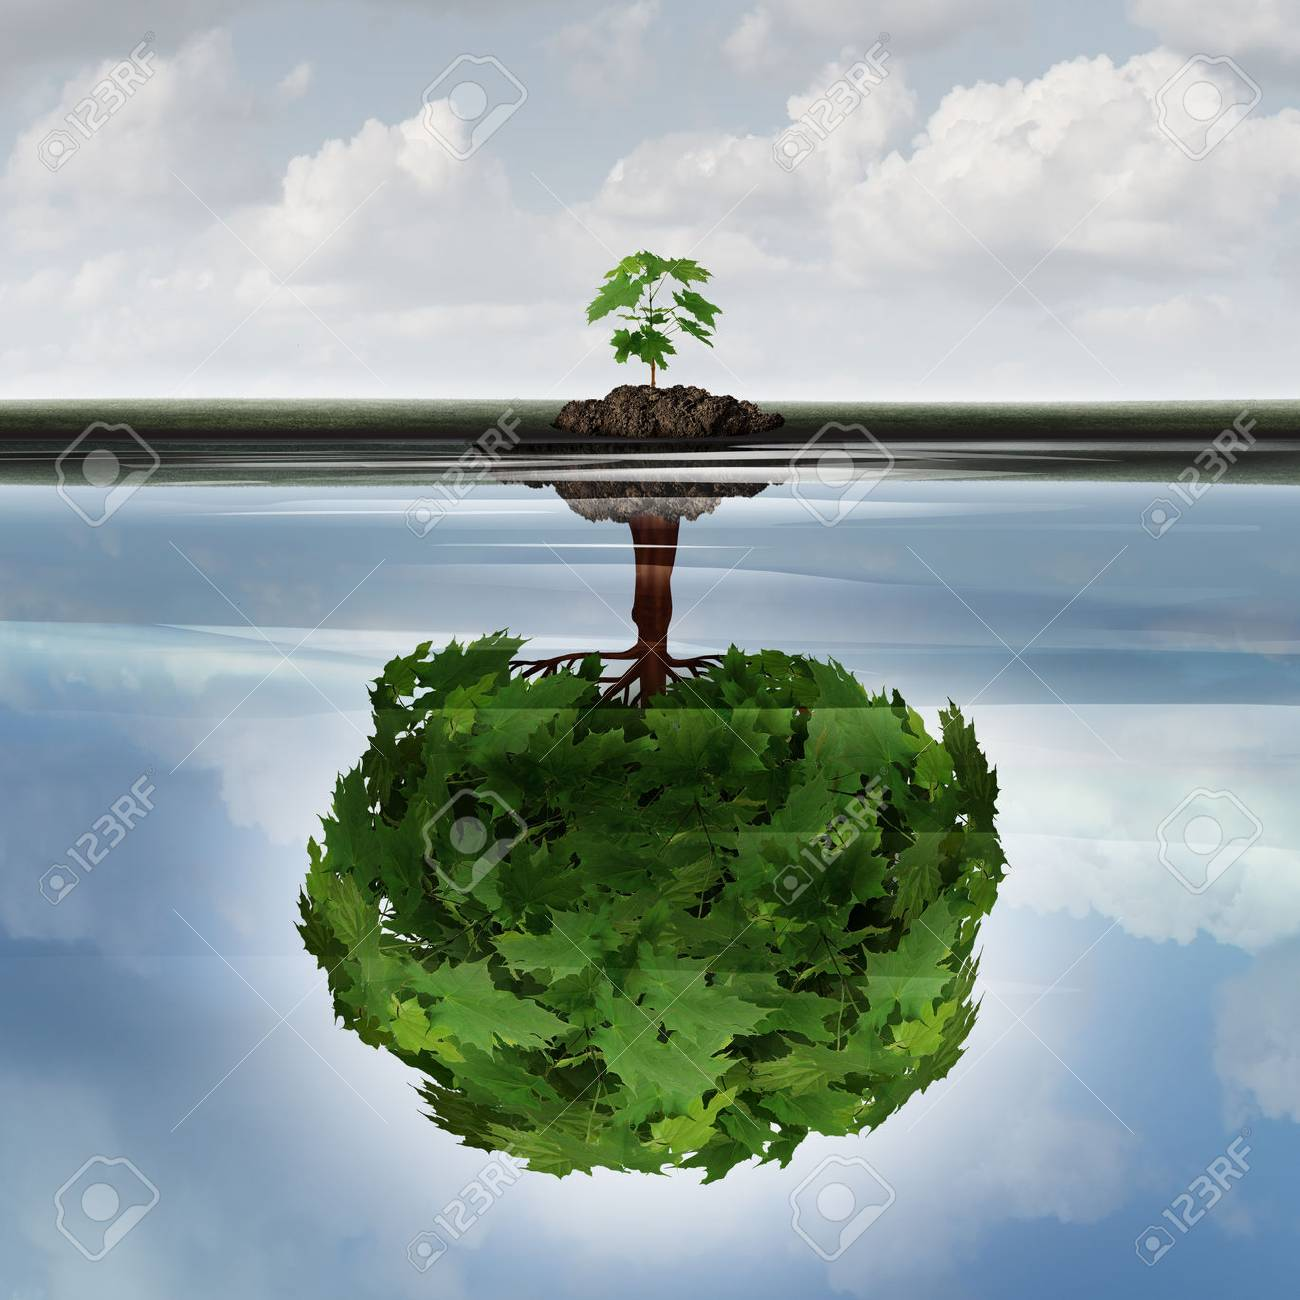 Potential success concept as a symbol for aspiration philosophy idea and determined growth motivation icon as a small young sappling making a reflection  of a mature large tree in the water with 3D illustration elements. Standard-Bild - 63825900